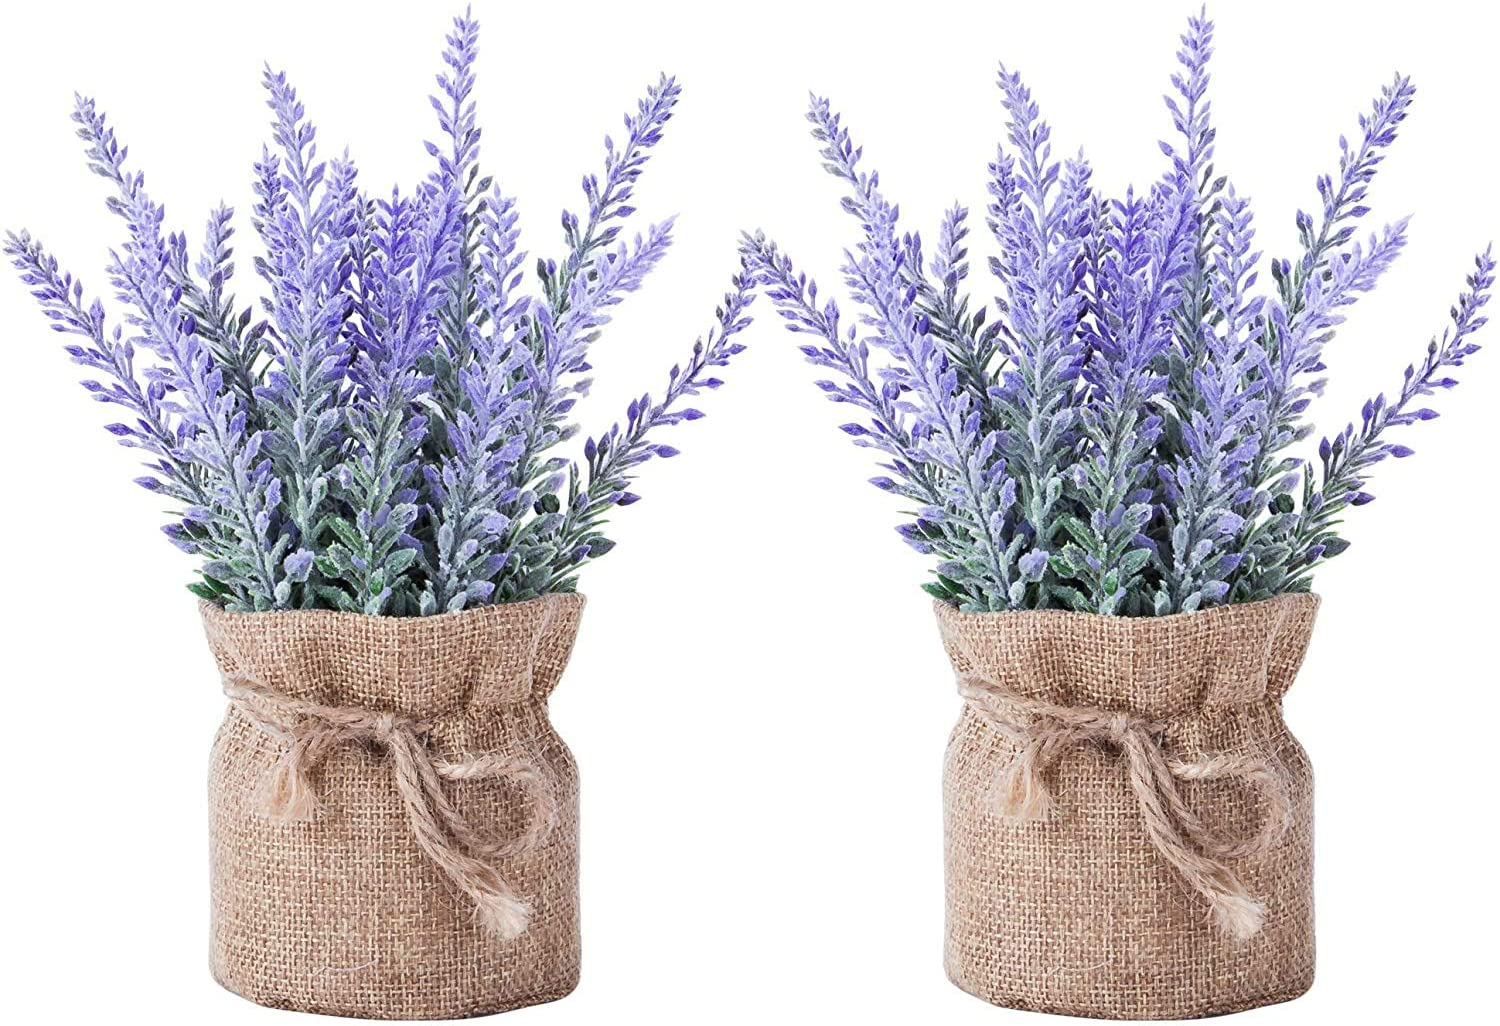 2 Pack Small Burlap Potted Lavender Flowers Import Plants Inventory cleanup selling sale - Artificial